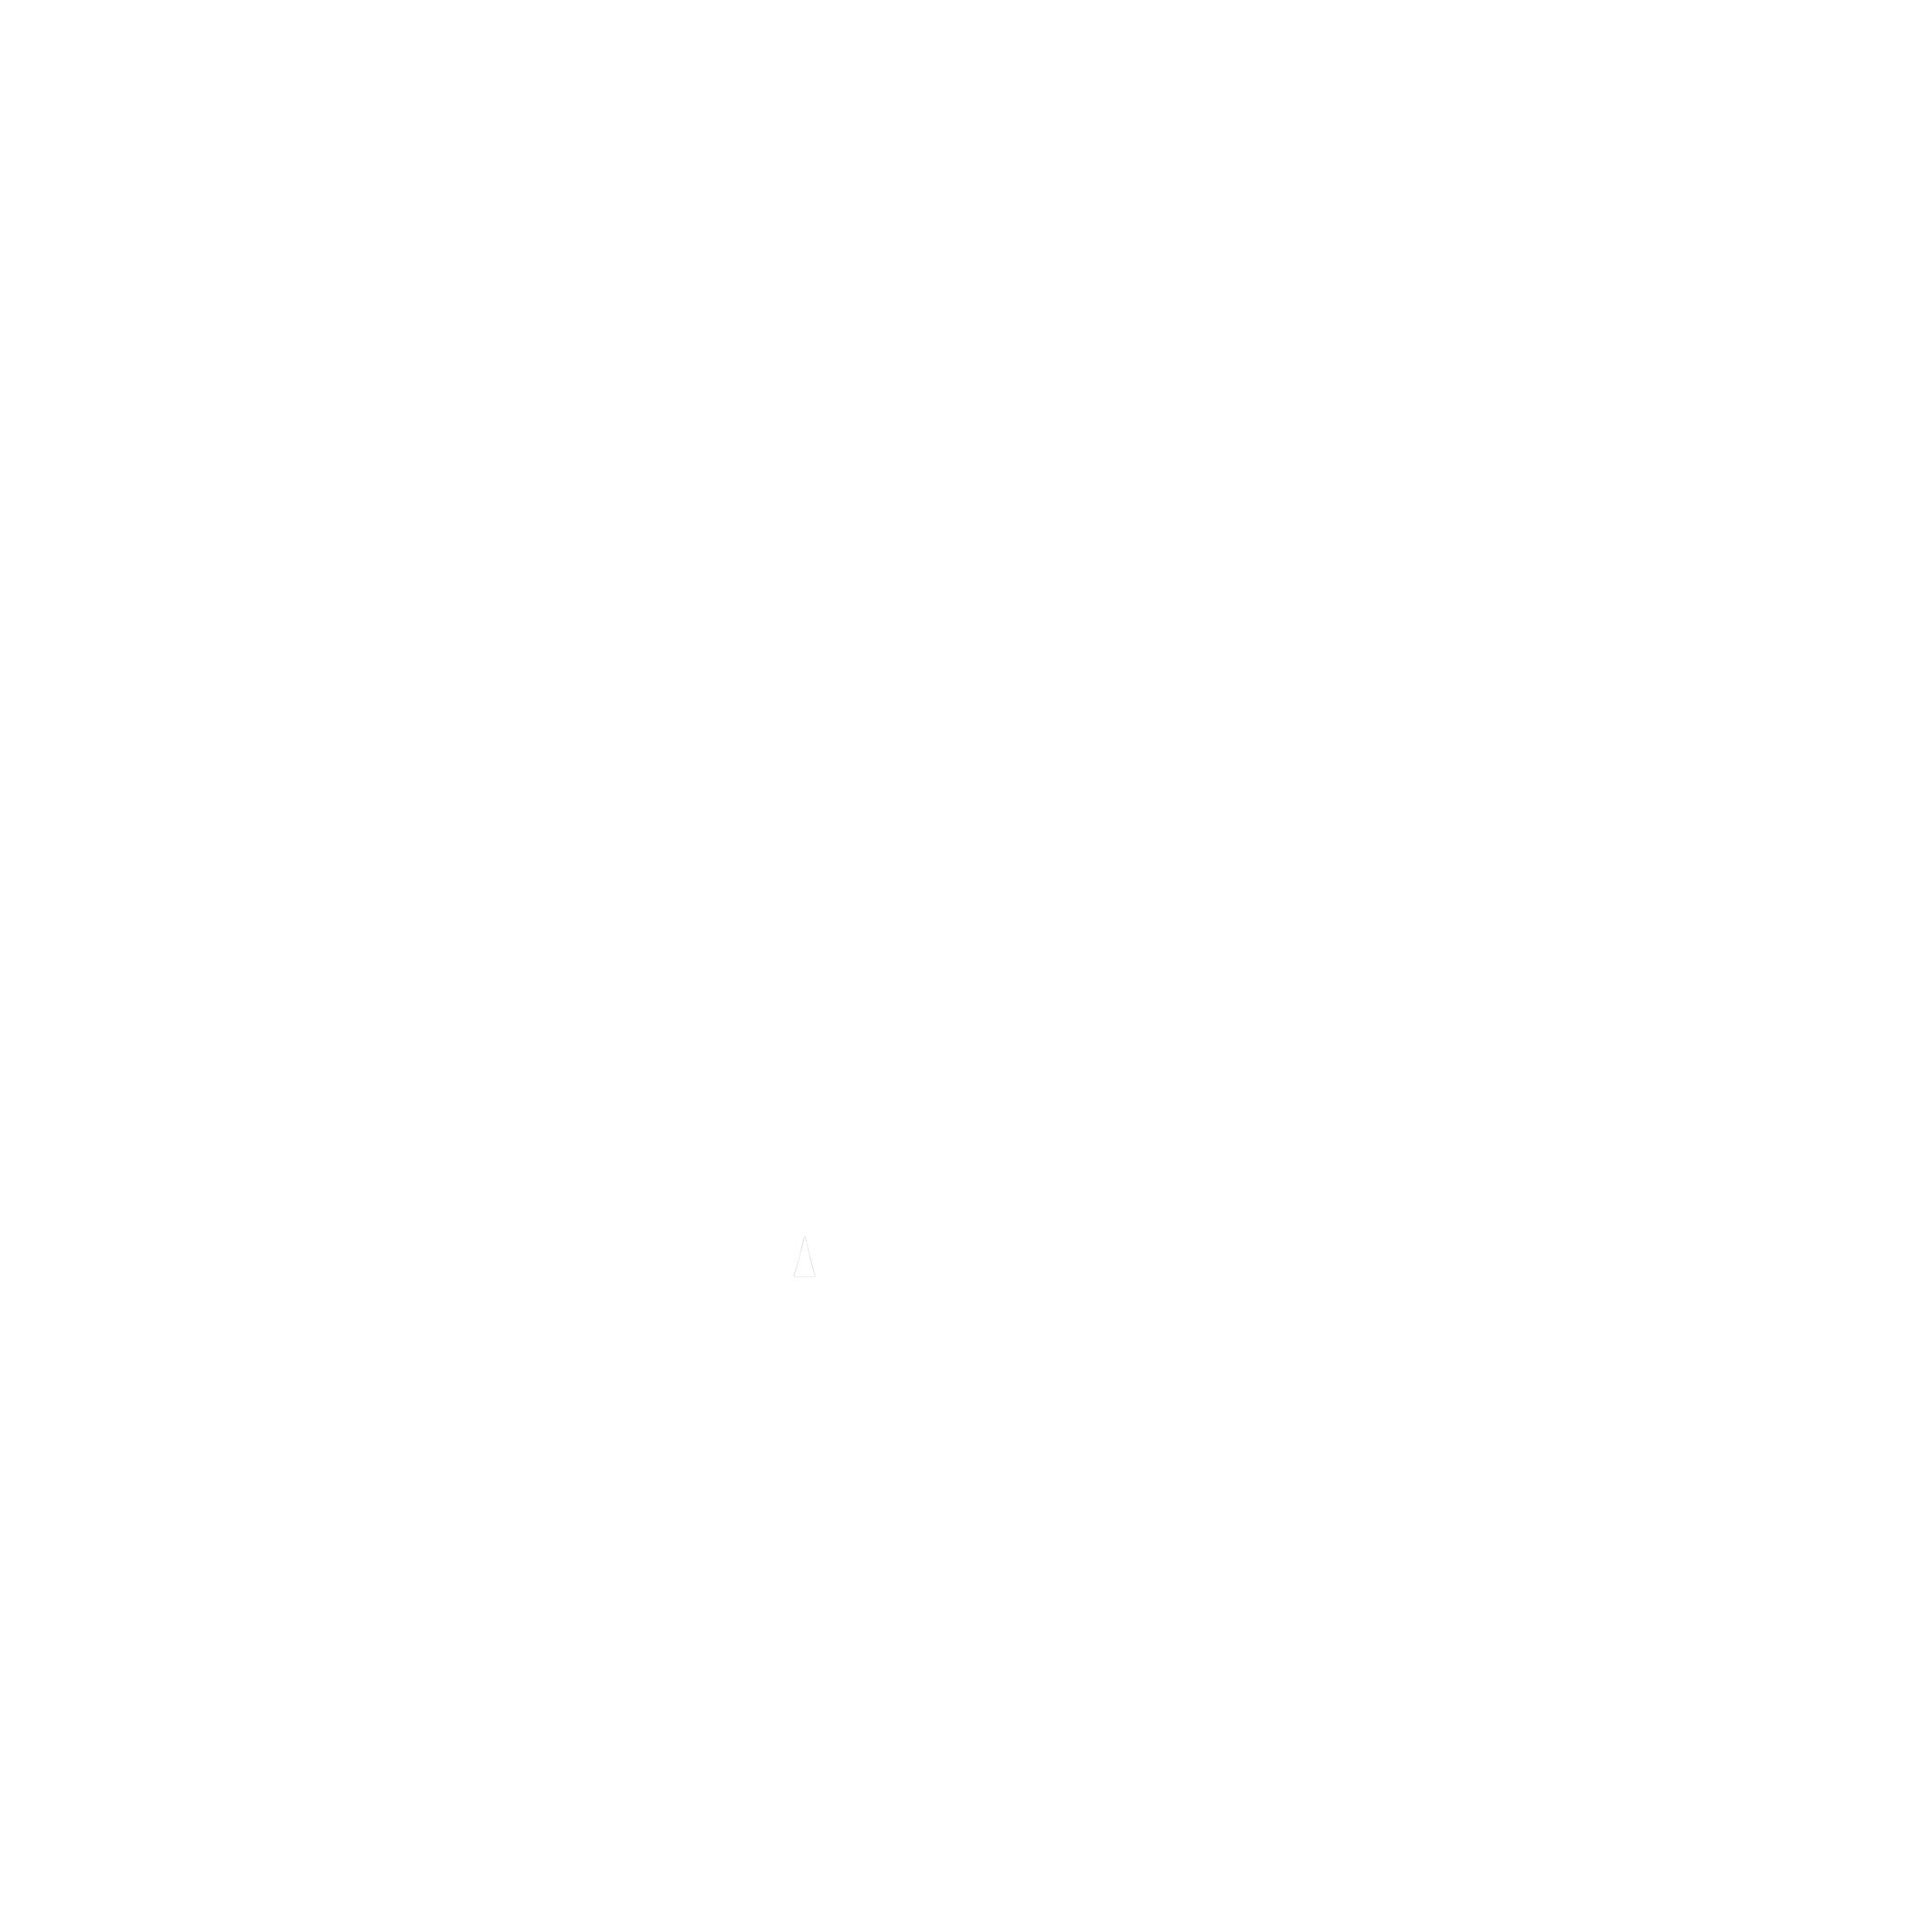 human rights watch small.png